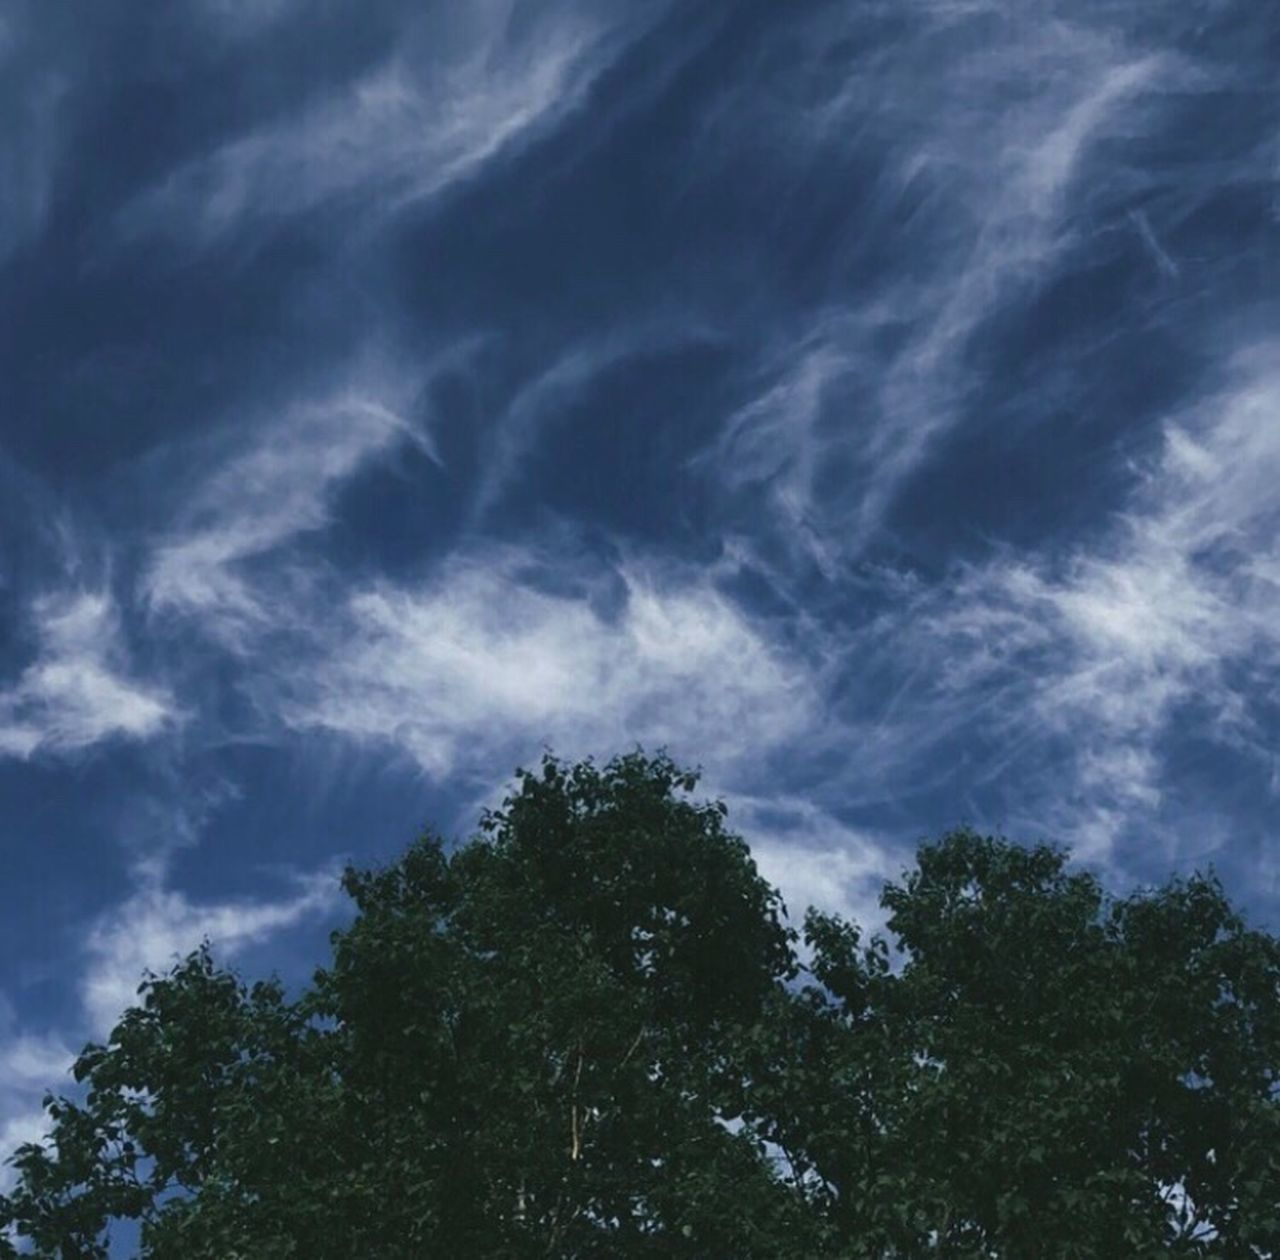 tree, sky, low angle view, nature, no people, beauty in nature, cloud - sky, outdoors, scenics, day, blue